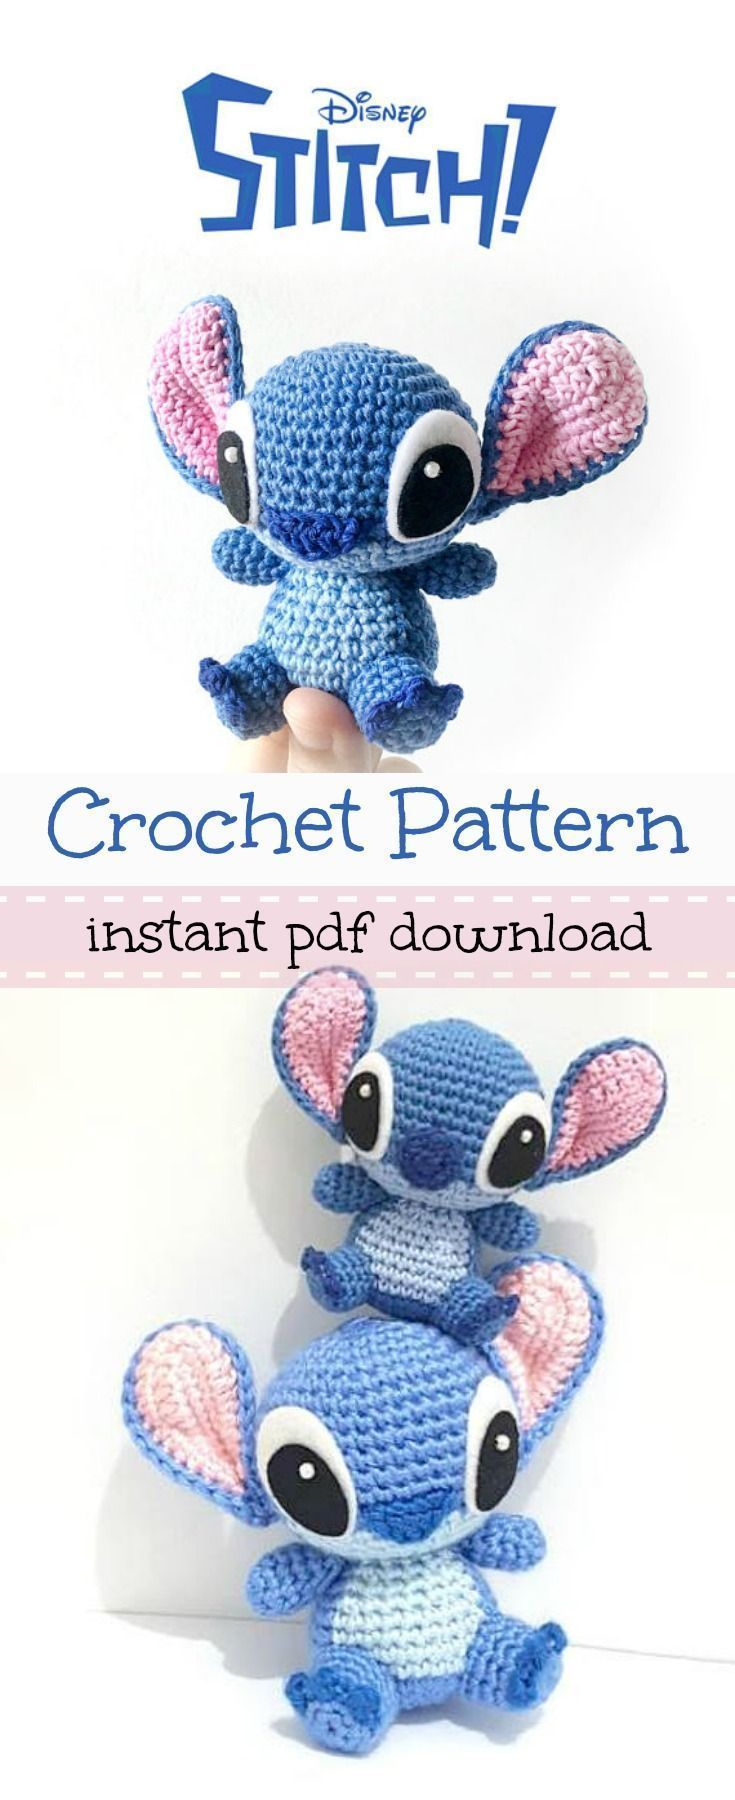 Disney's Stitch from Lilo and Stitch amigurumi crochet pattern. #DisneyCrochetPatterns #amigurumicrochet